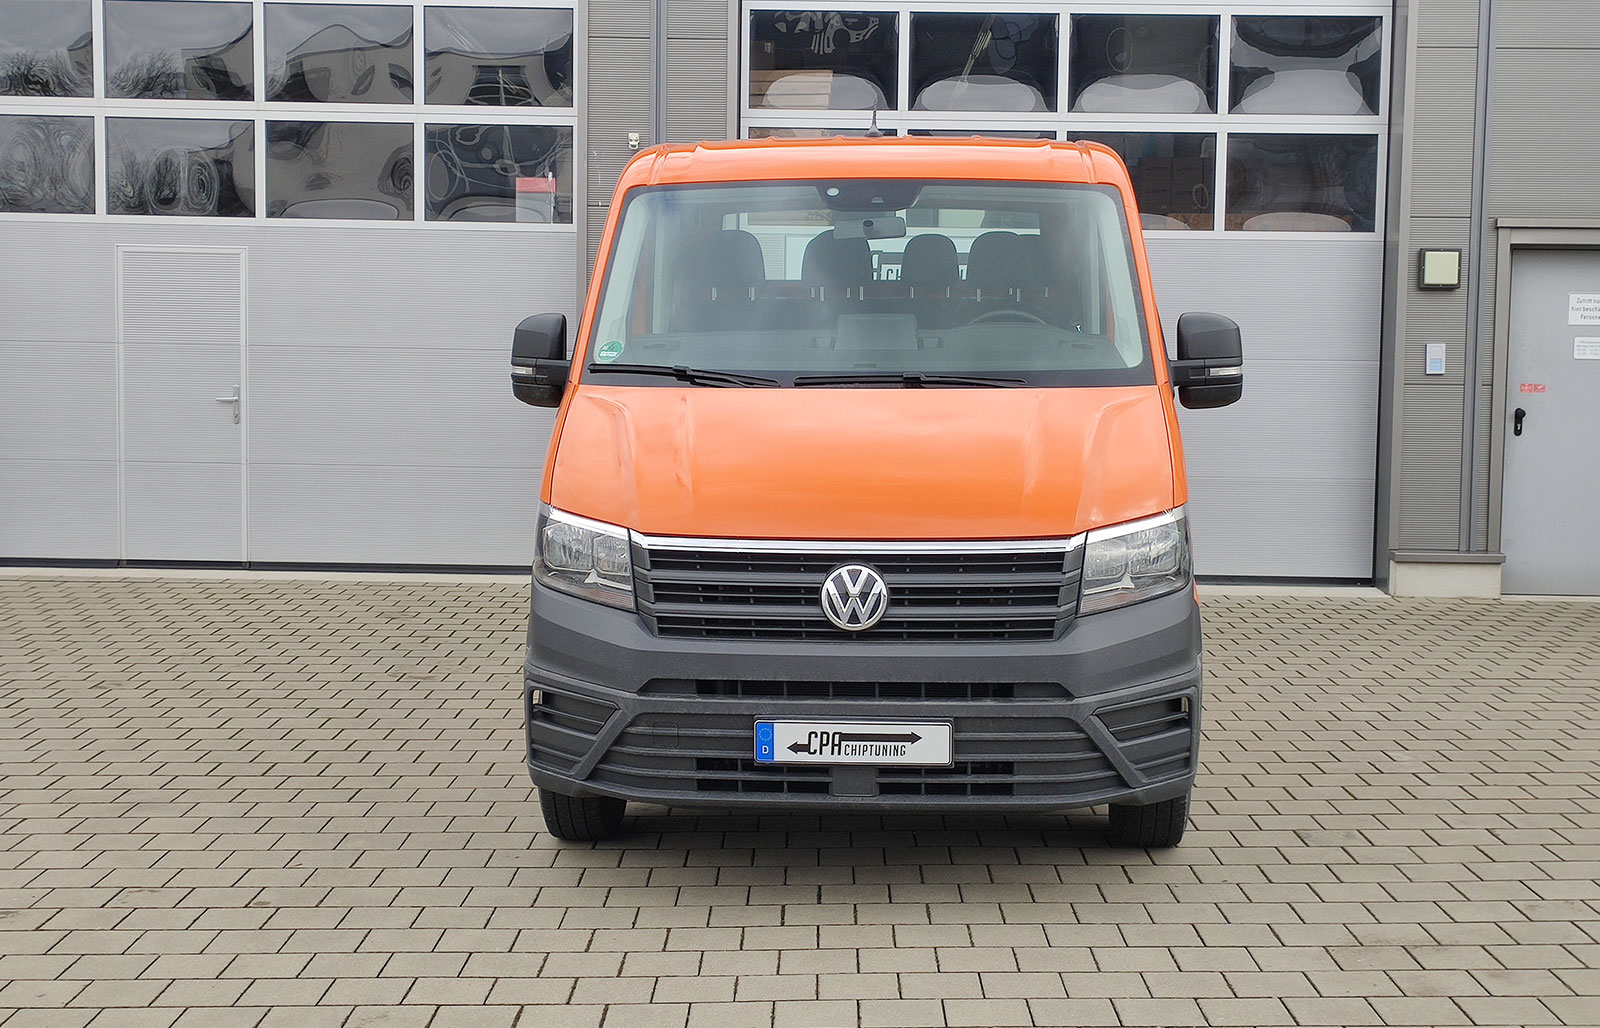 VW Crafter II 2.0 TDI chiptuning